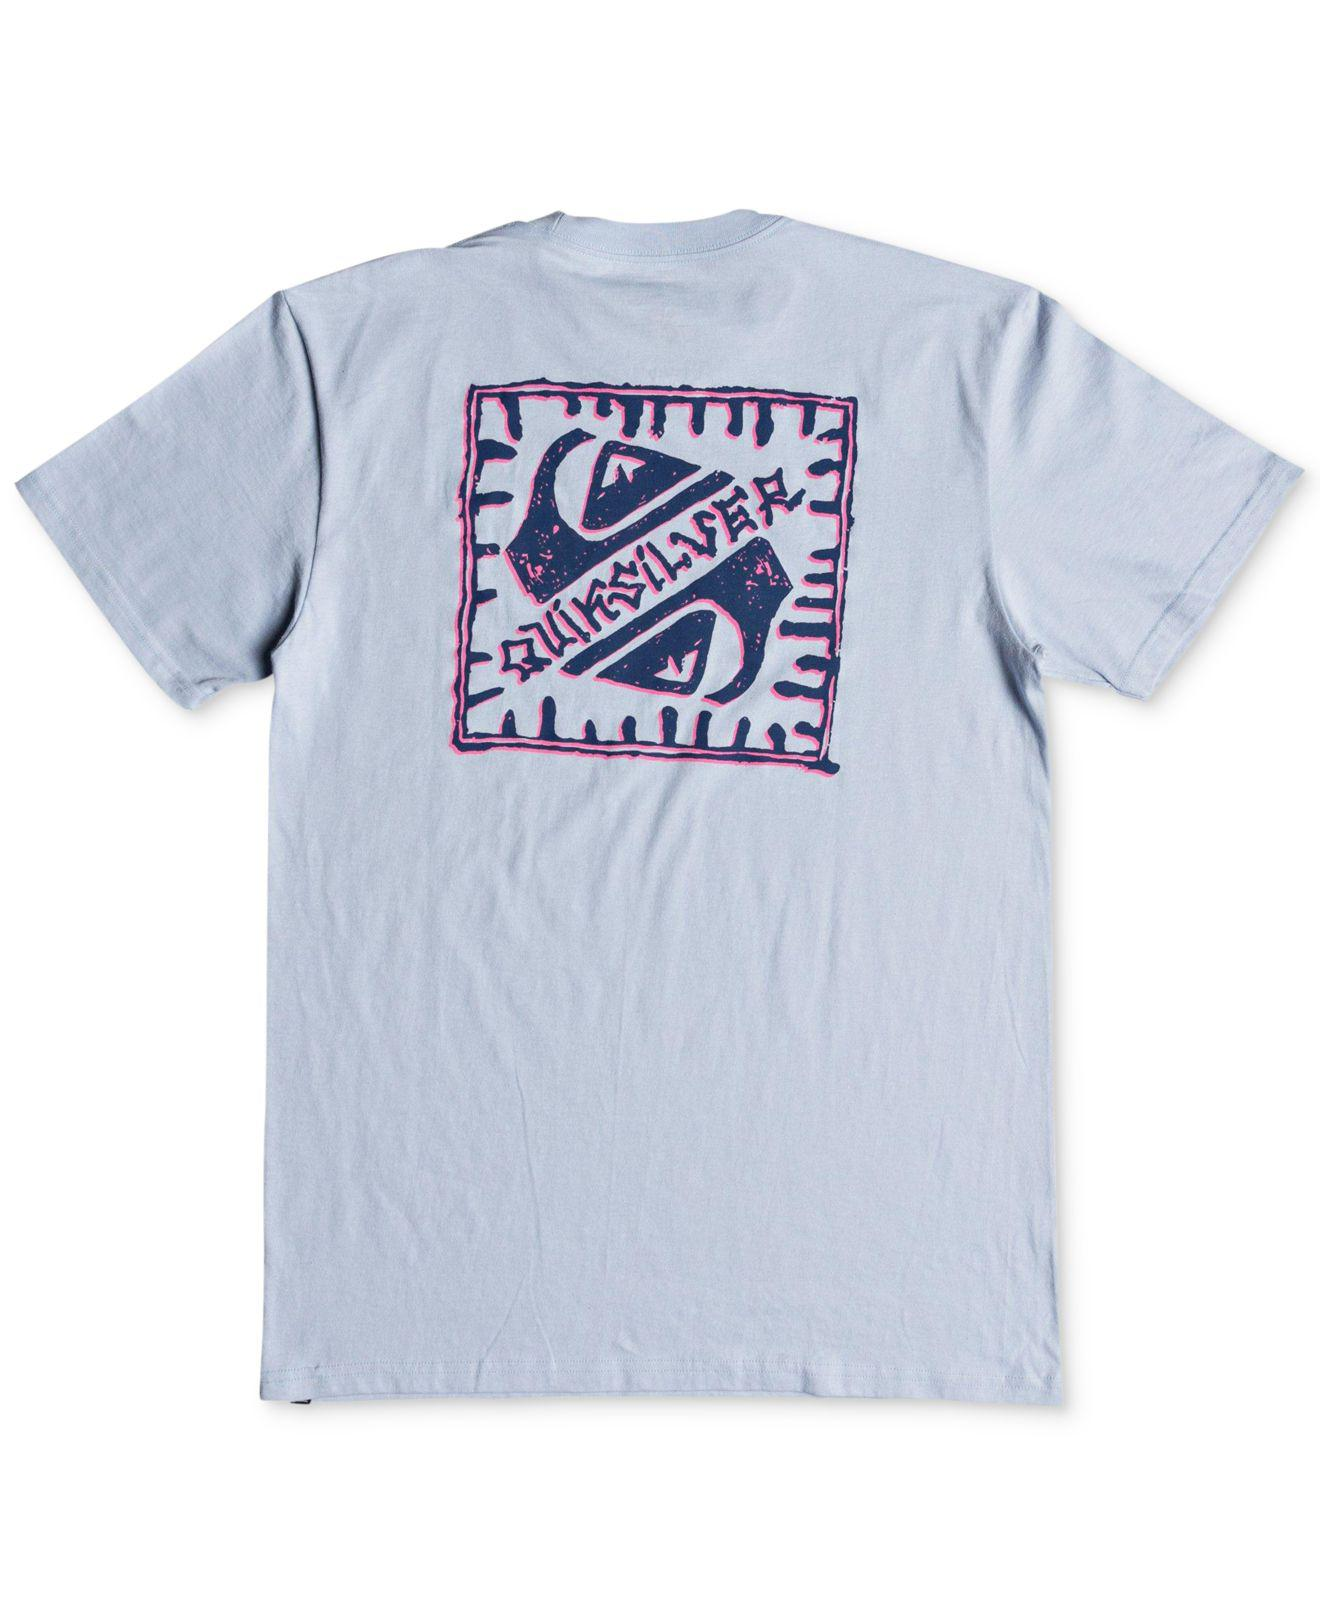 9bb92eaca814 Lyst - Quiksilver Saved By The Swell Graphic T-shirt in Blue for Men